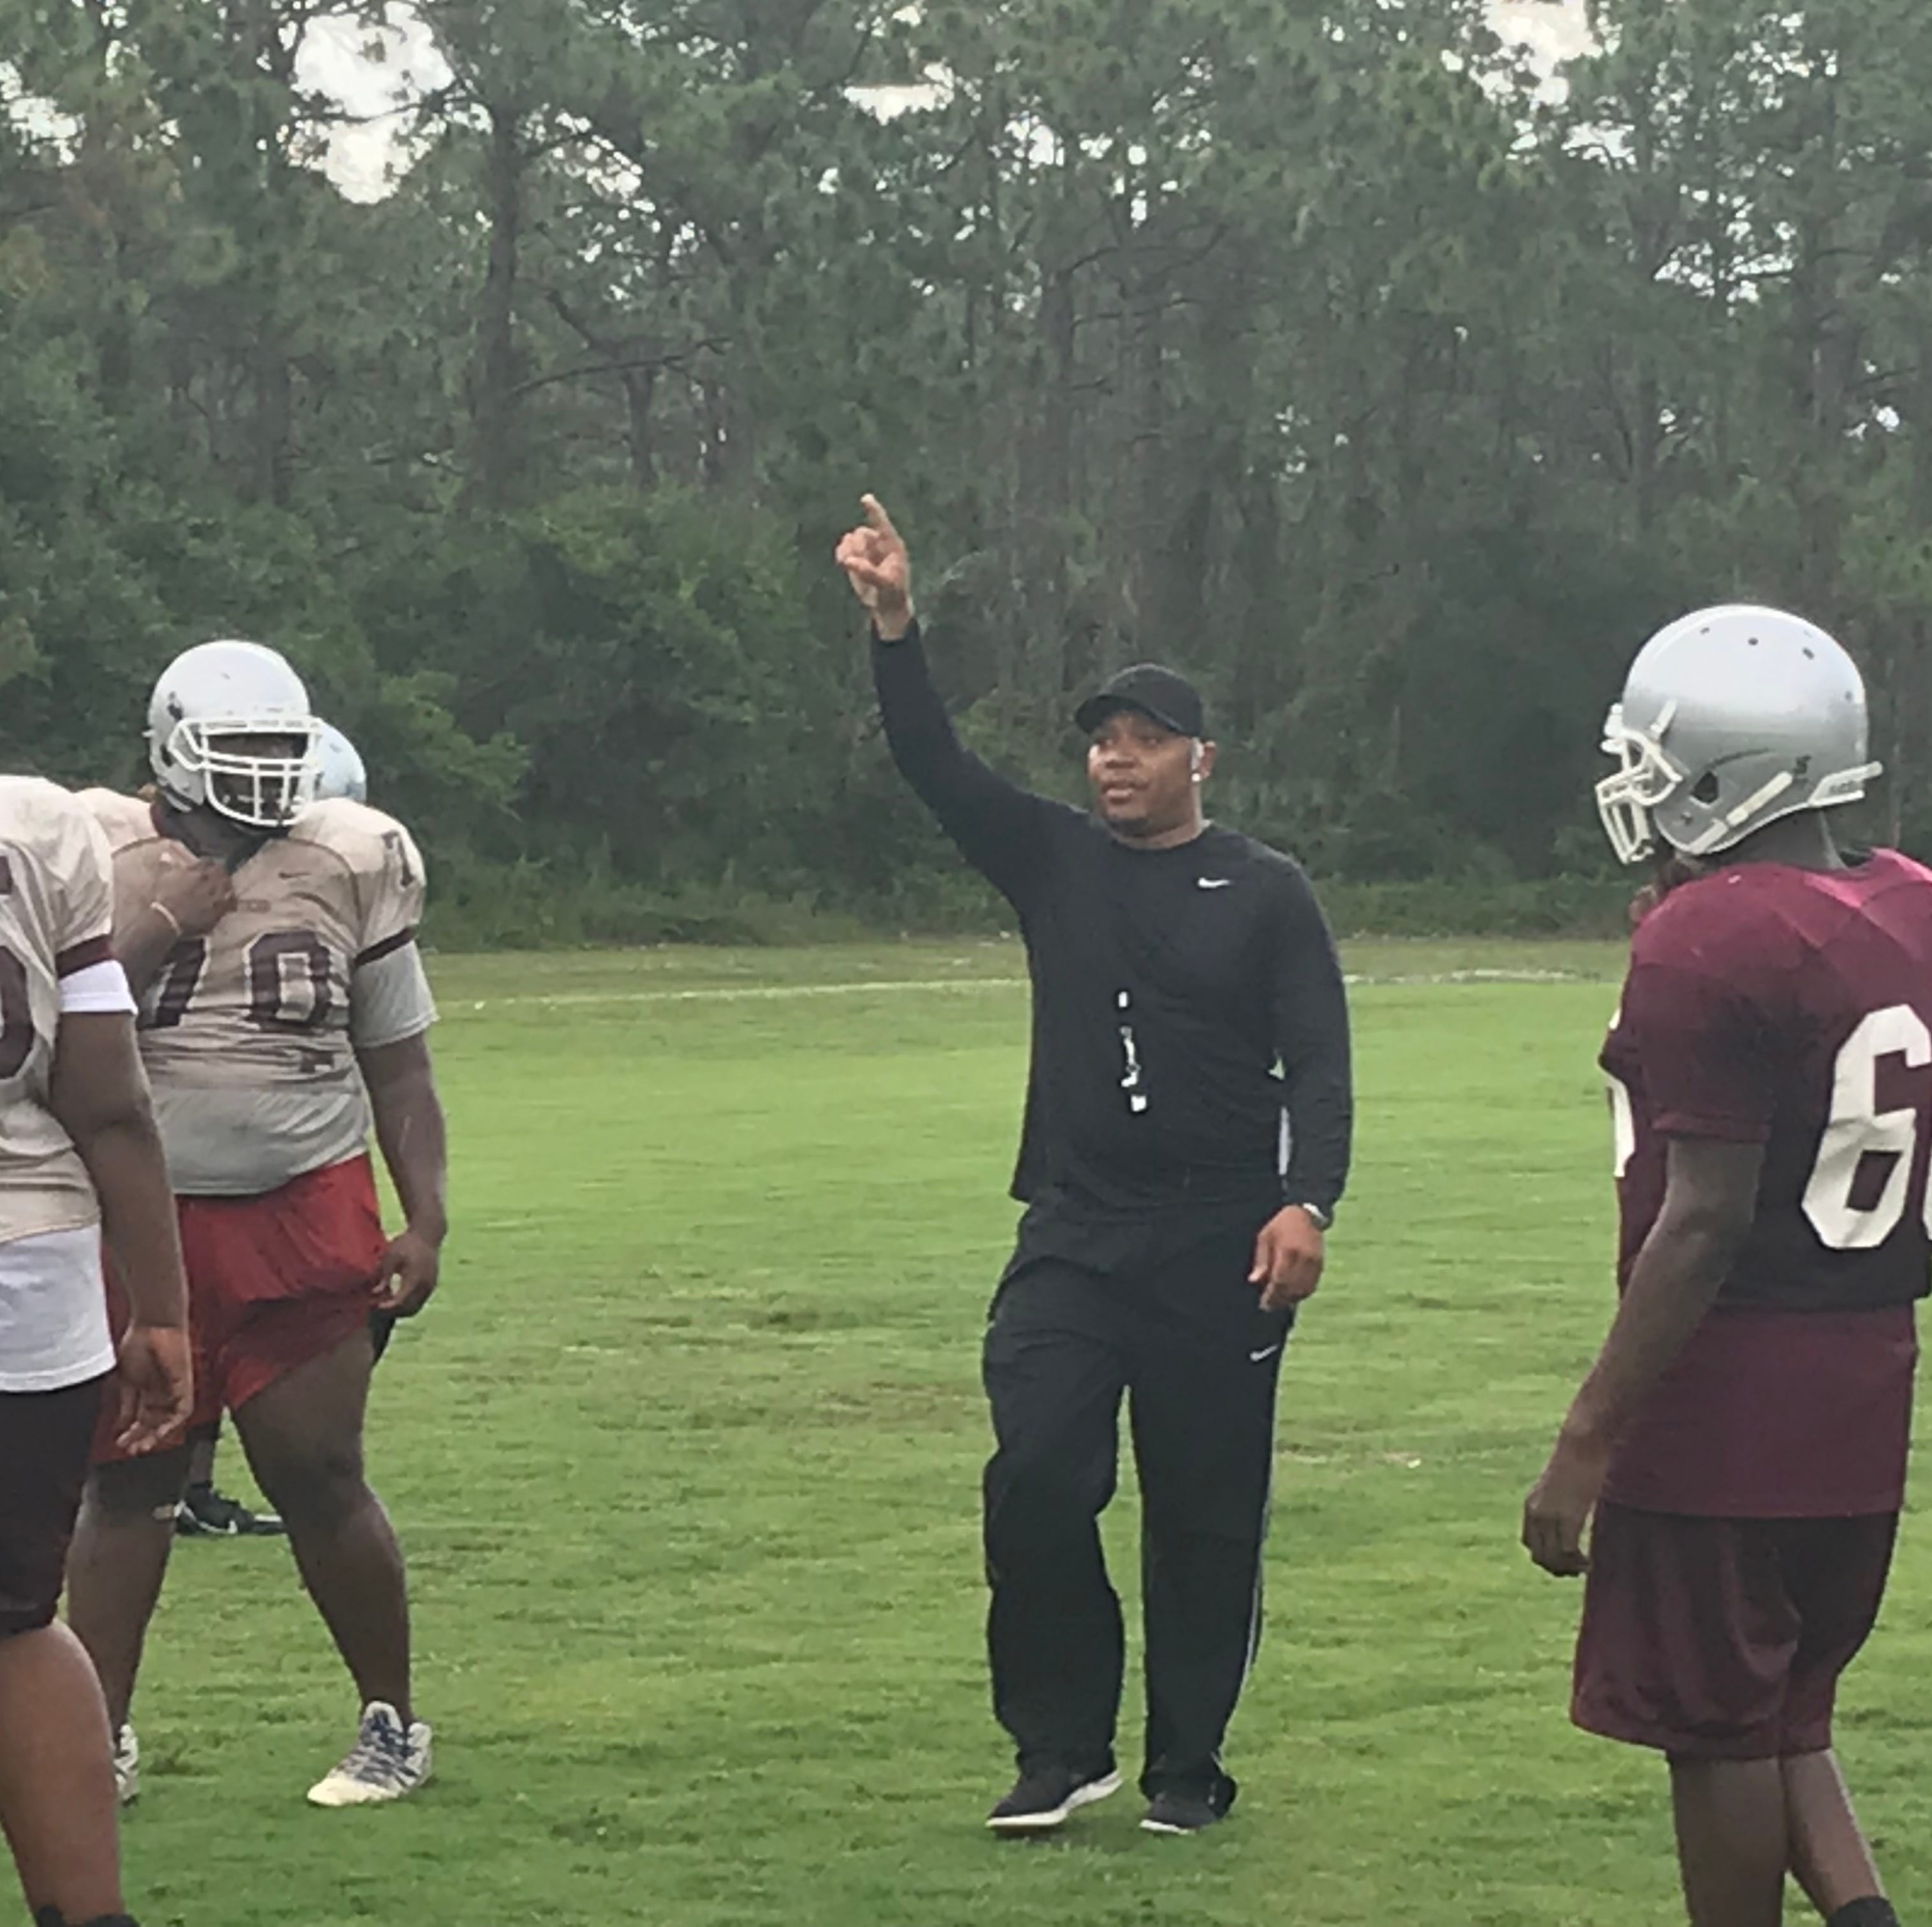 New Fort Pierce Westwood football coach hopes to provide accountability and stability